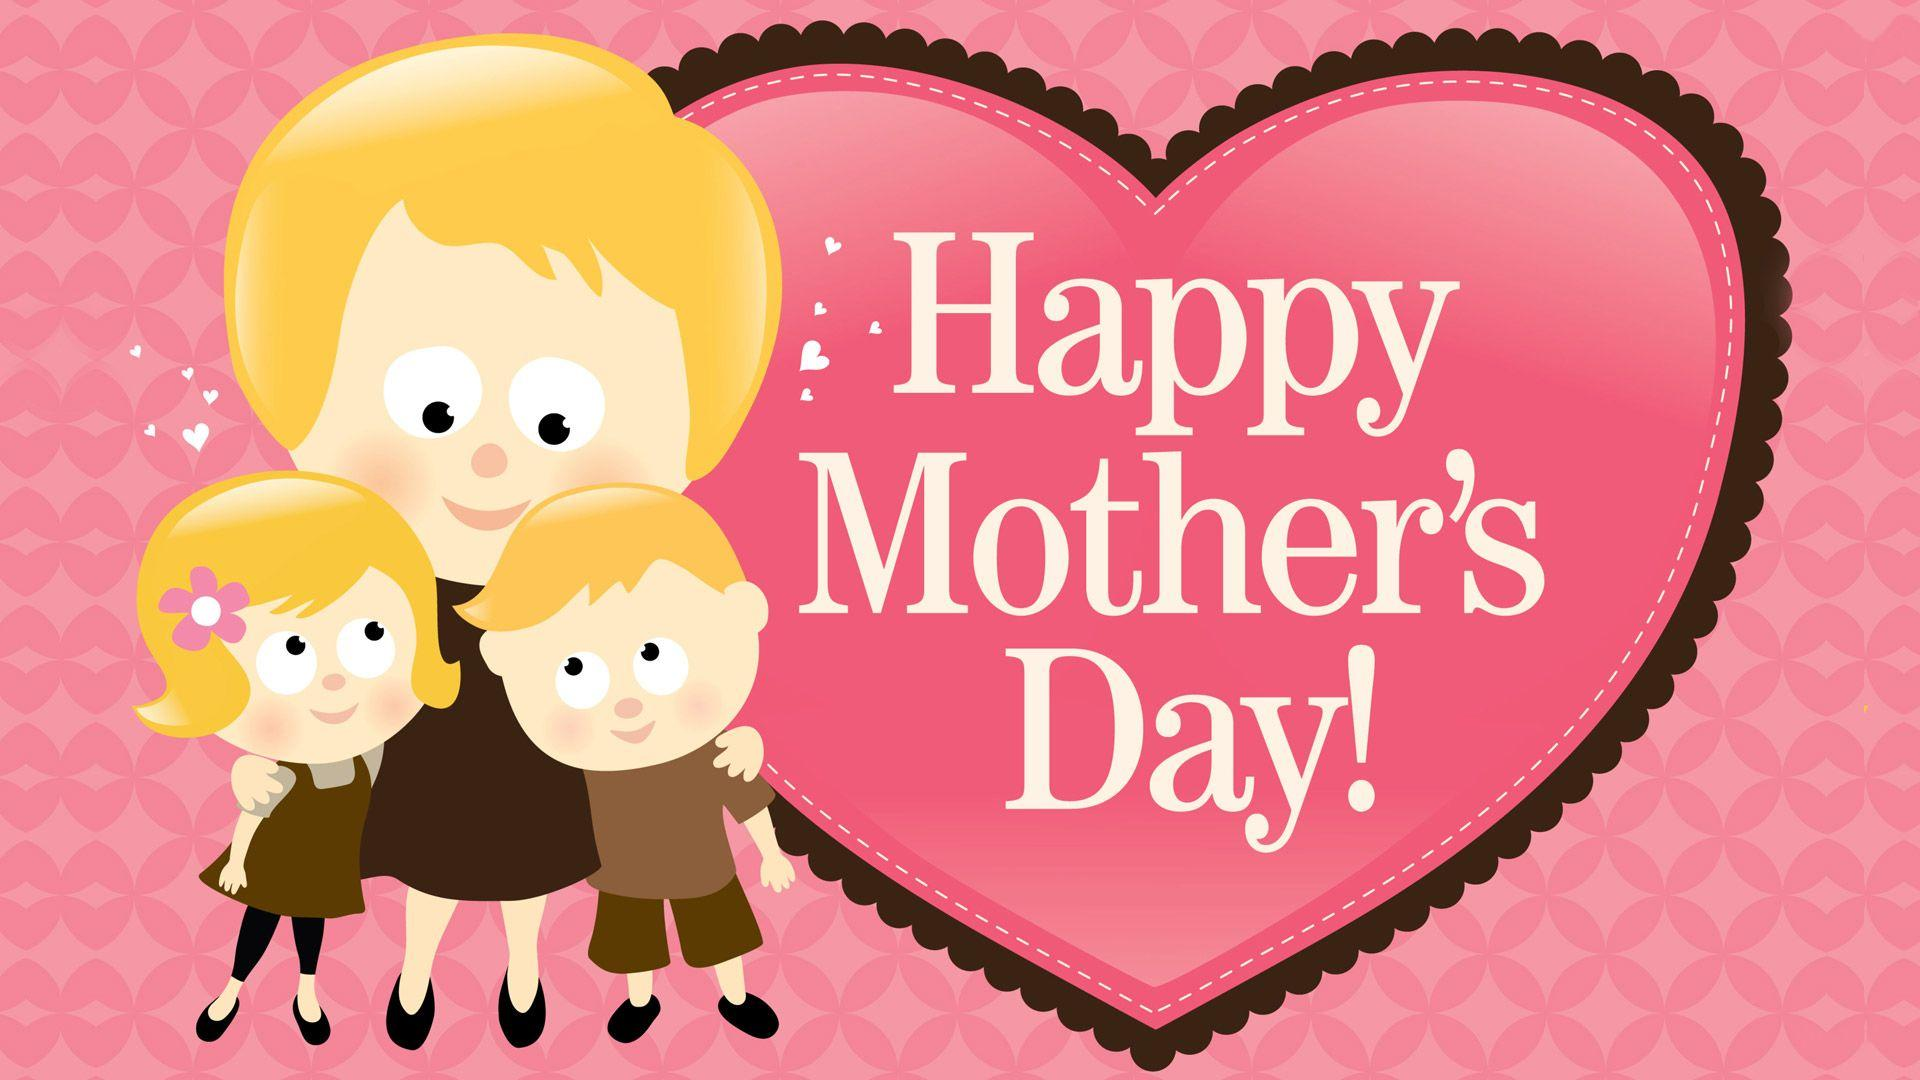 undefined Happy Mother's Day Wallpapers (51 Wallpapers) | Adorable ...